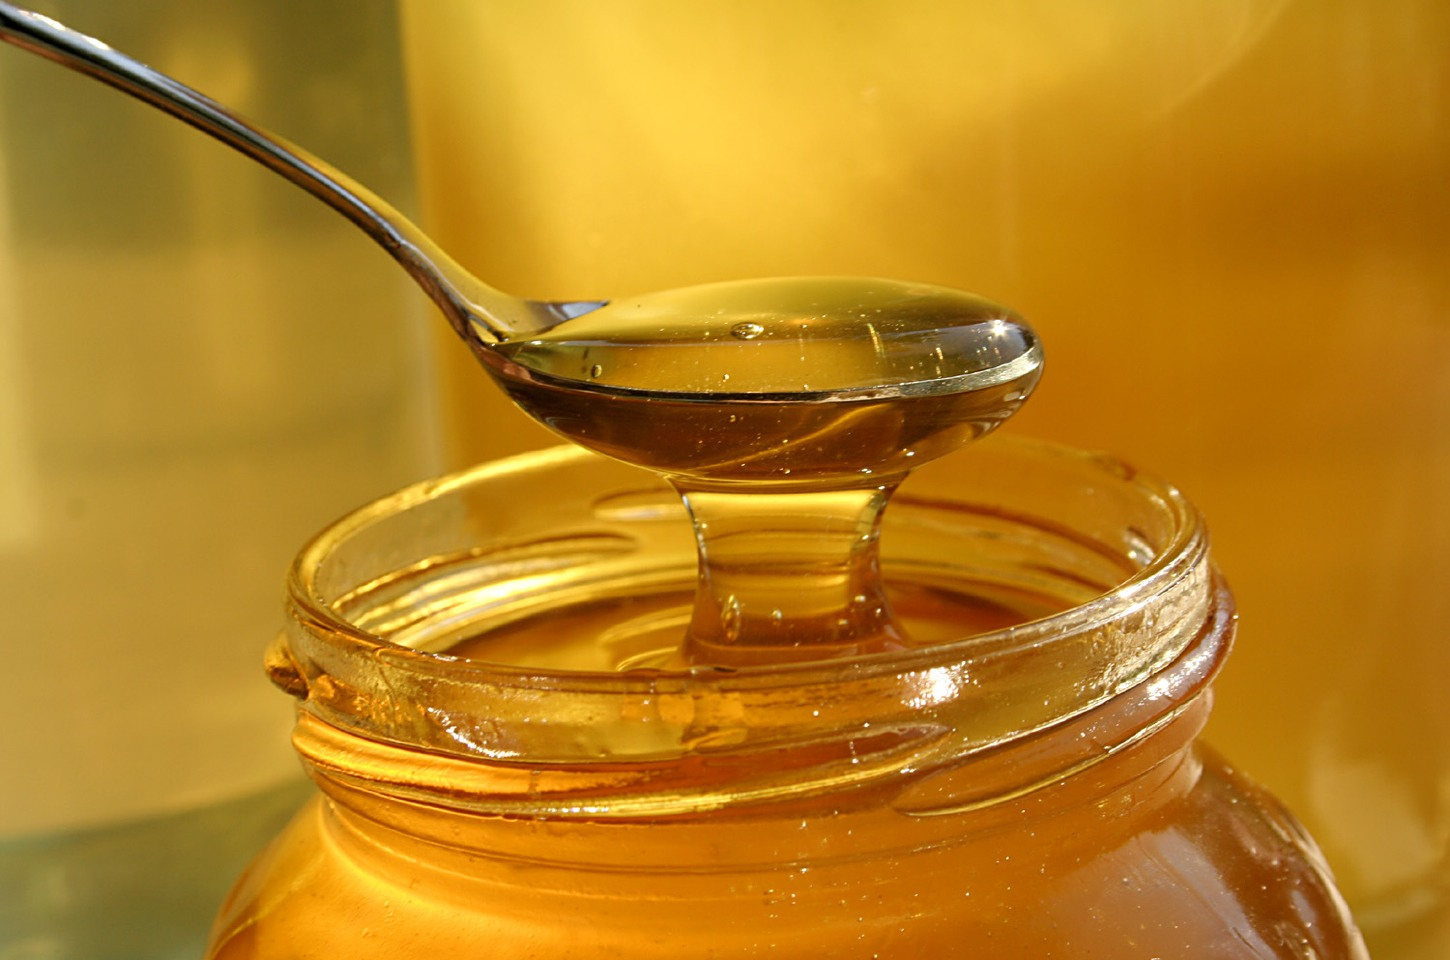 Add 3 tablespoons of honey